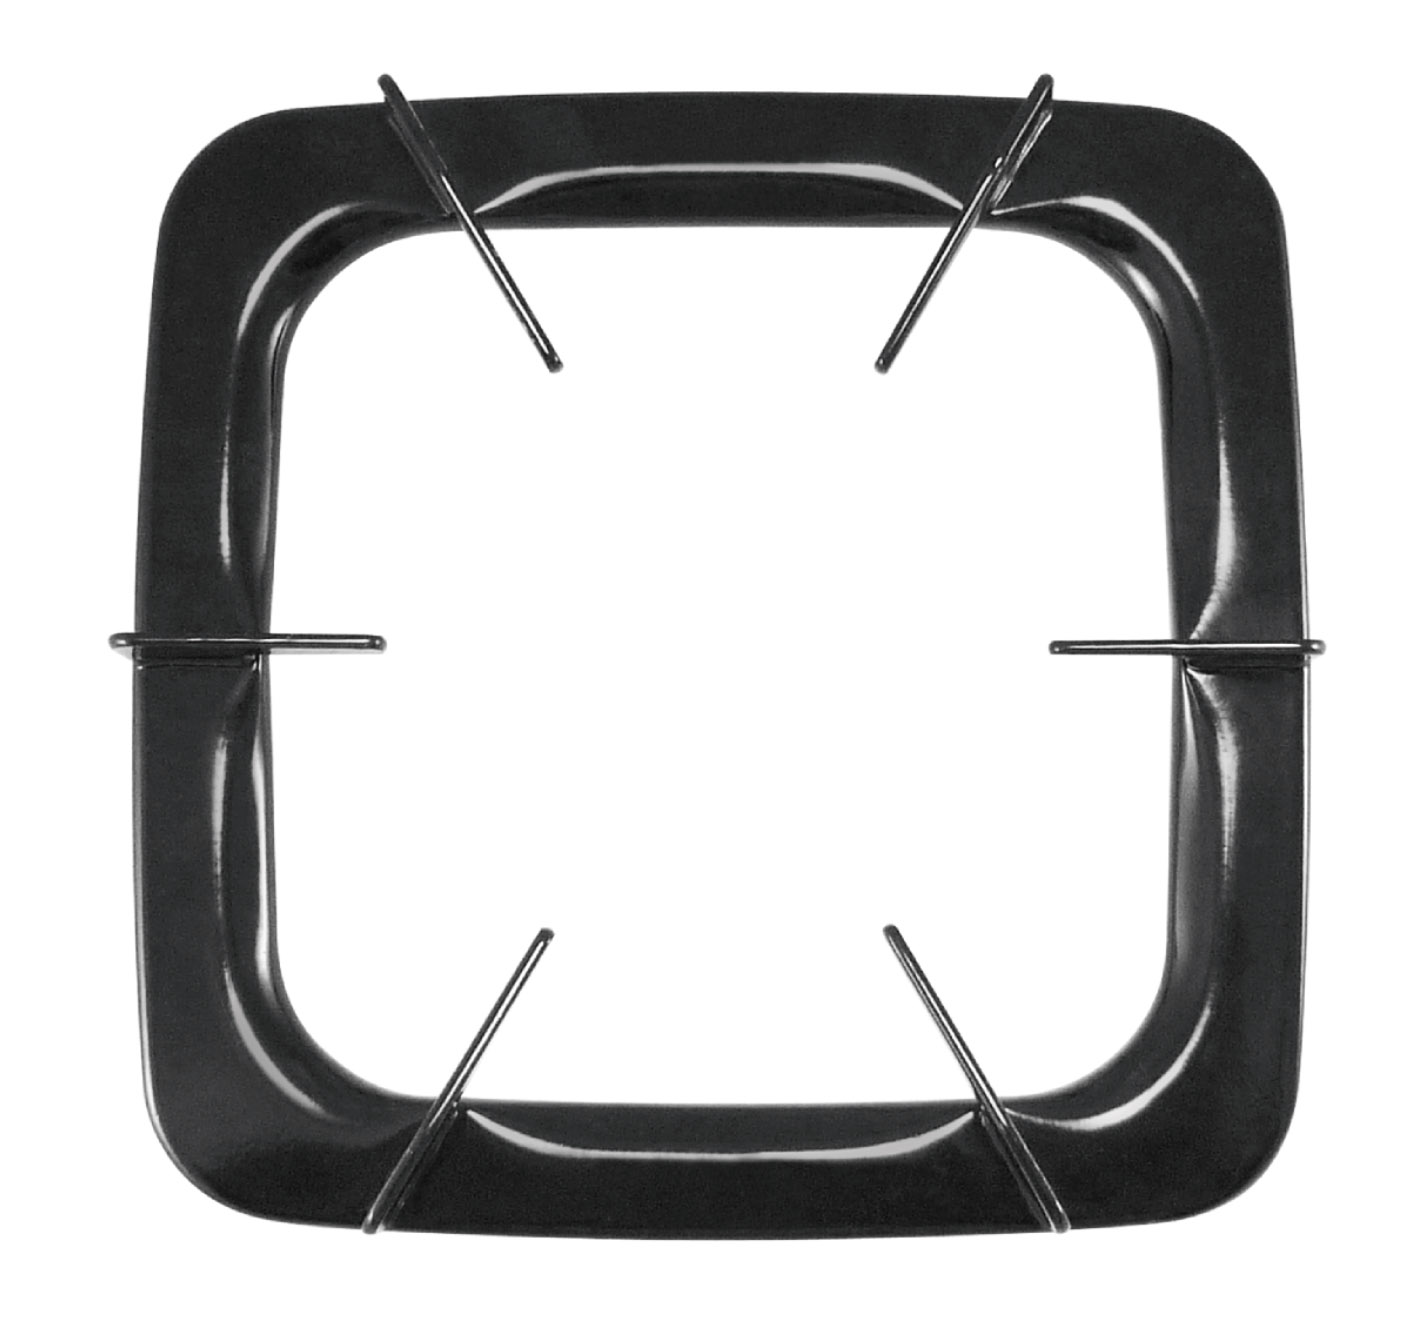 Square oven rack (height and low / 2 into)